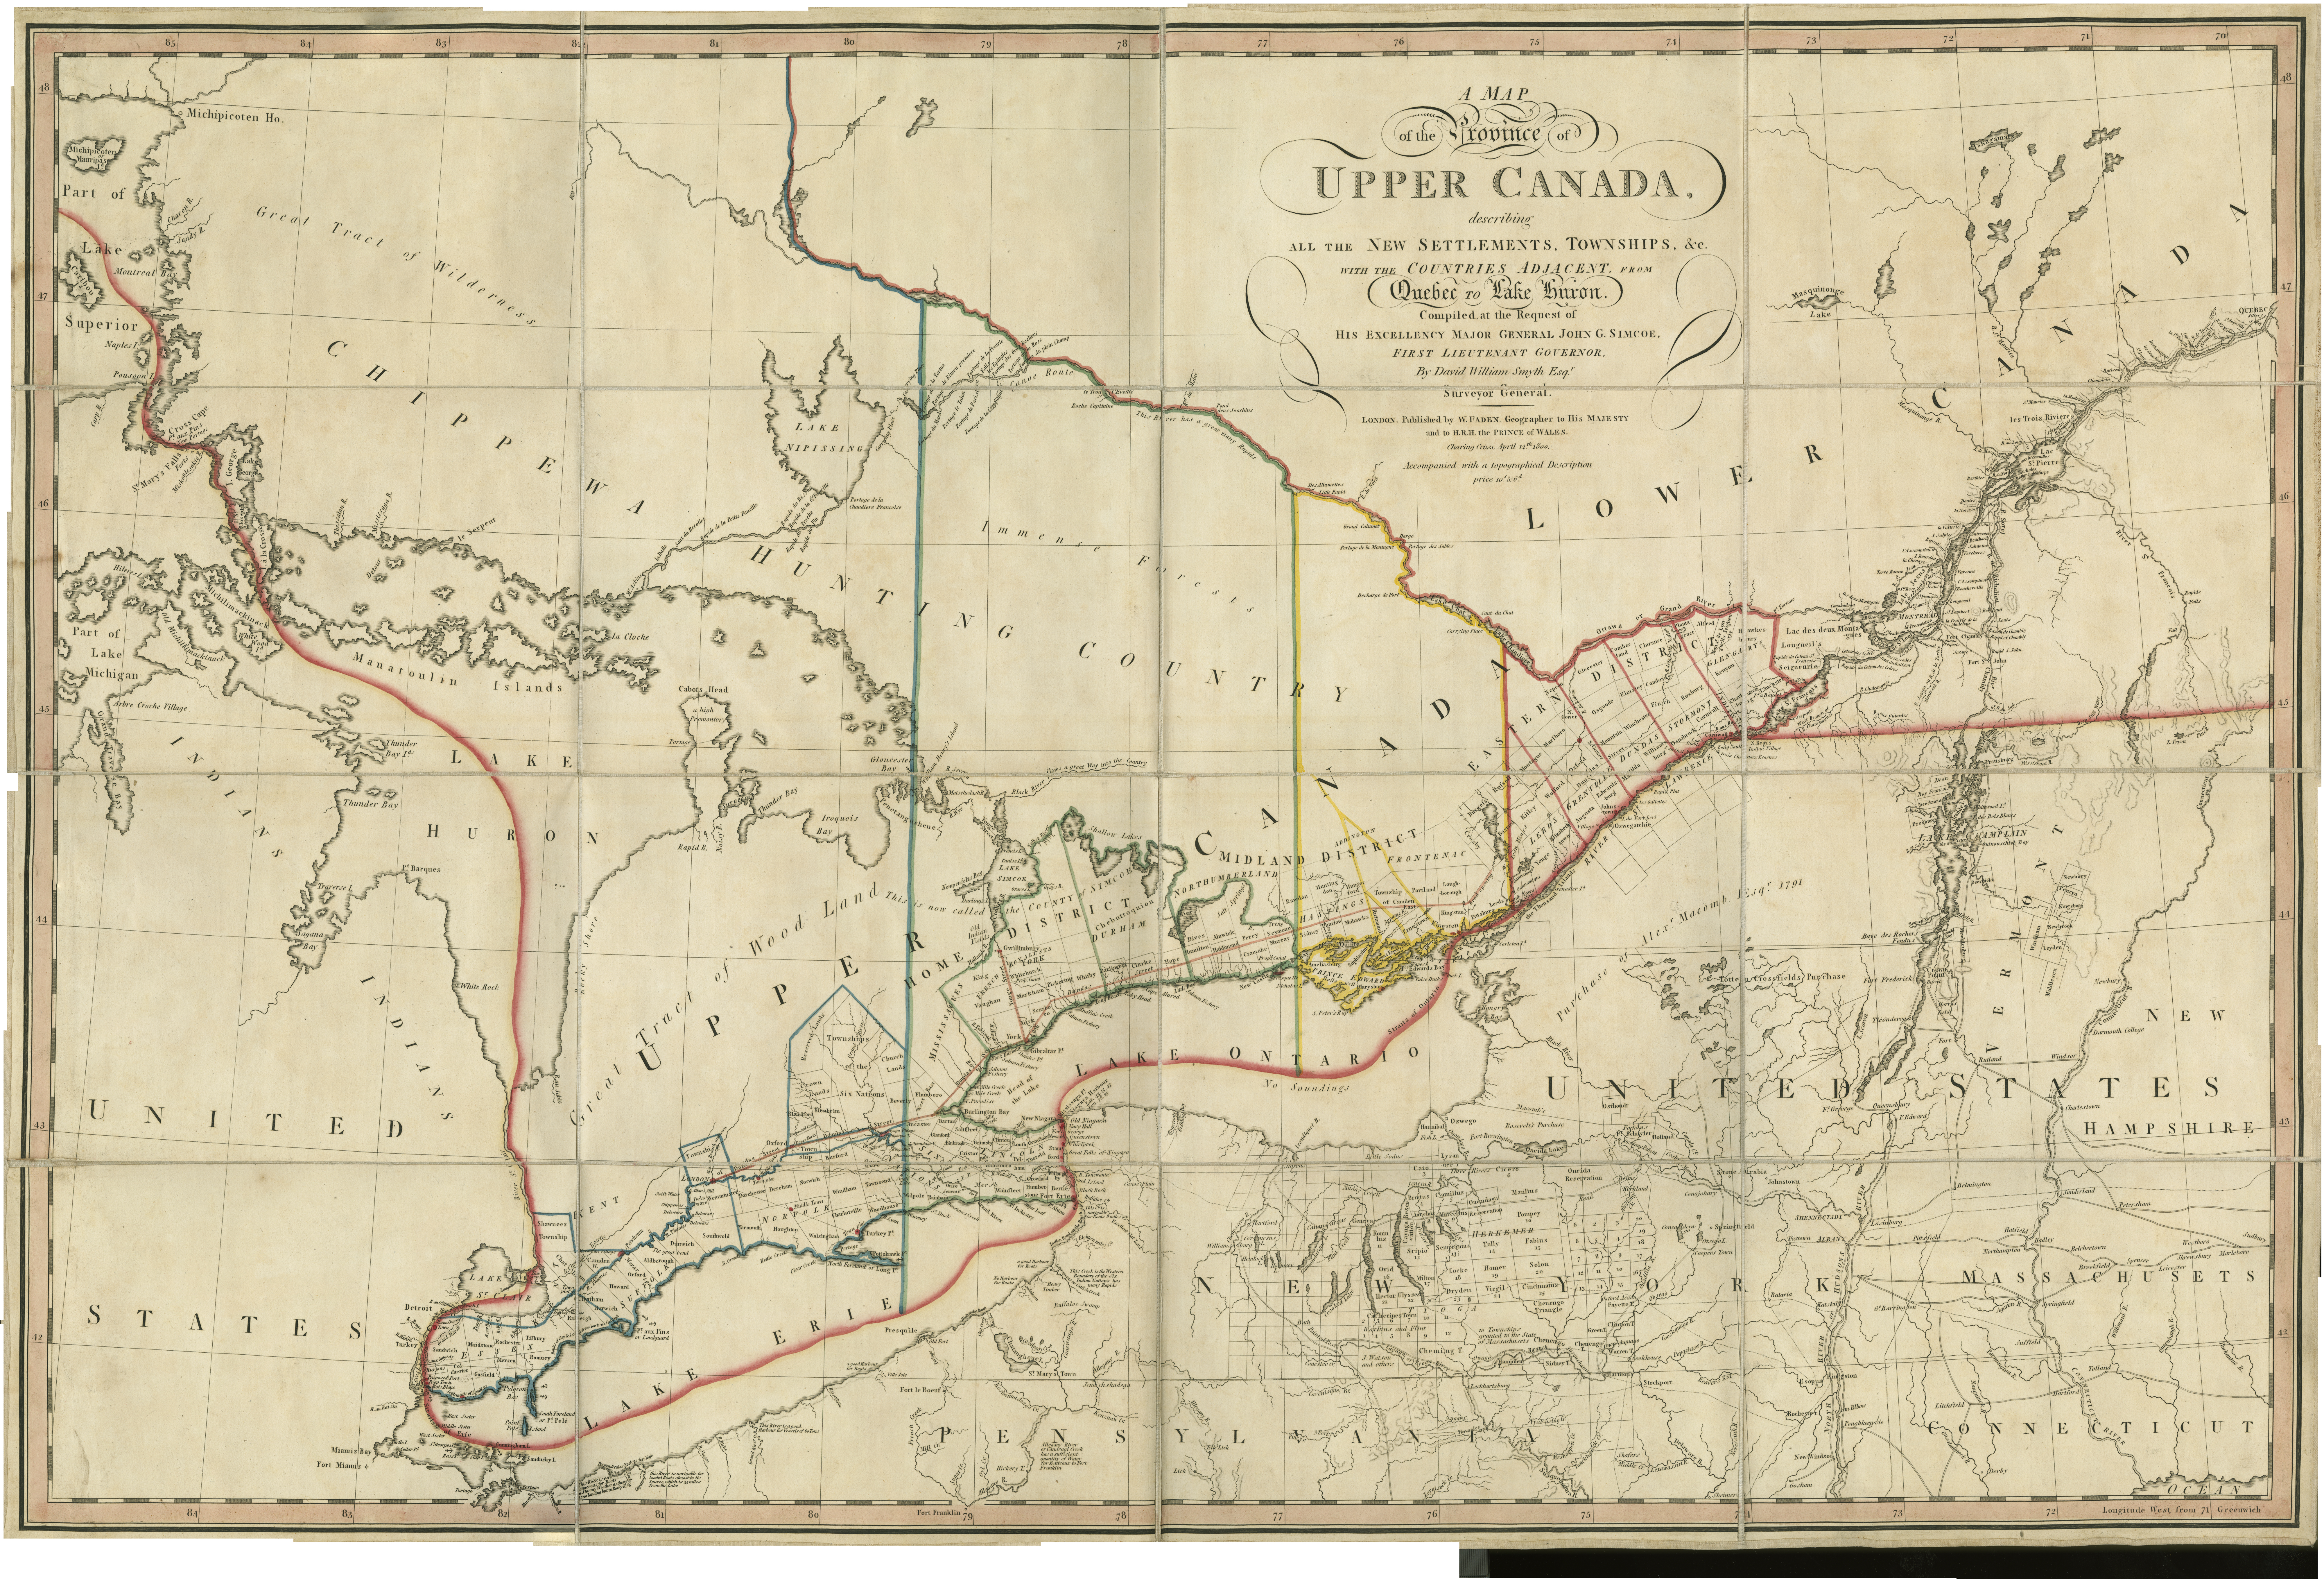 A map of the province of Upper Canada describing all the new